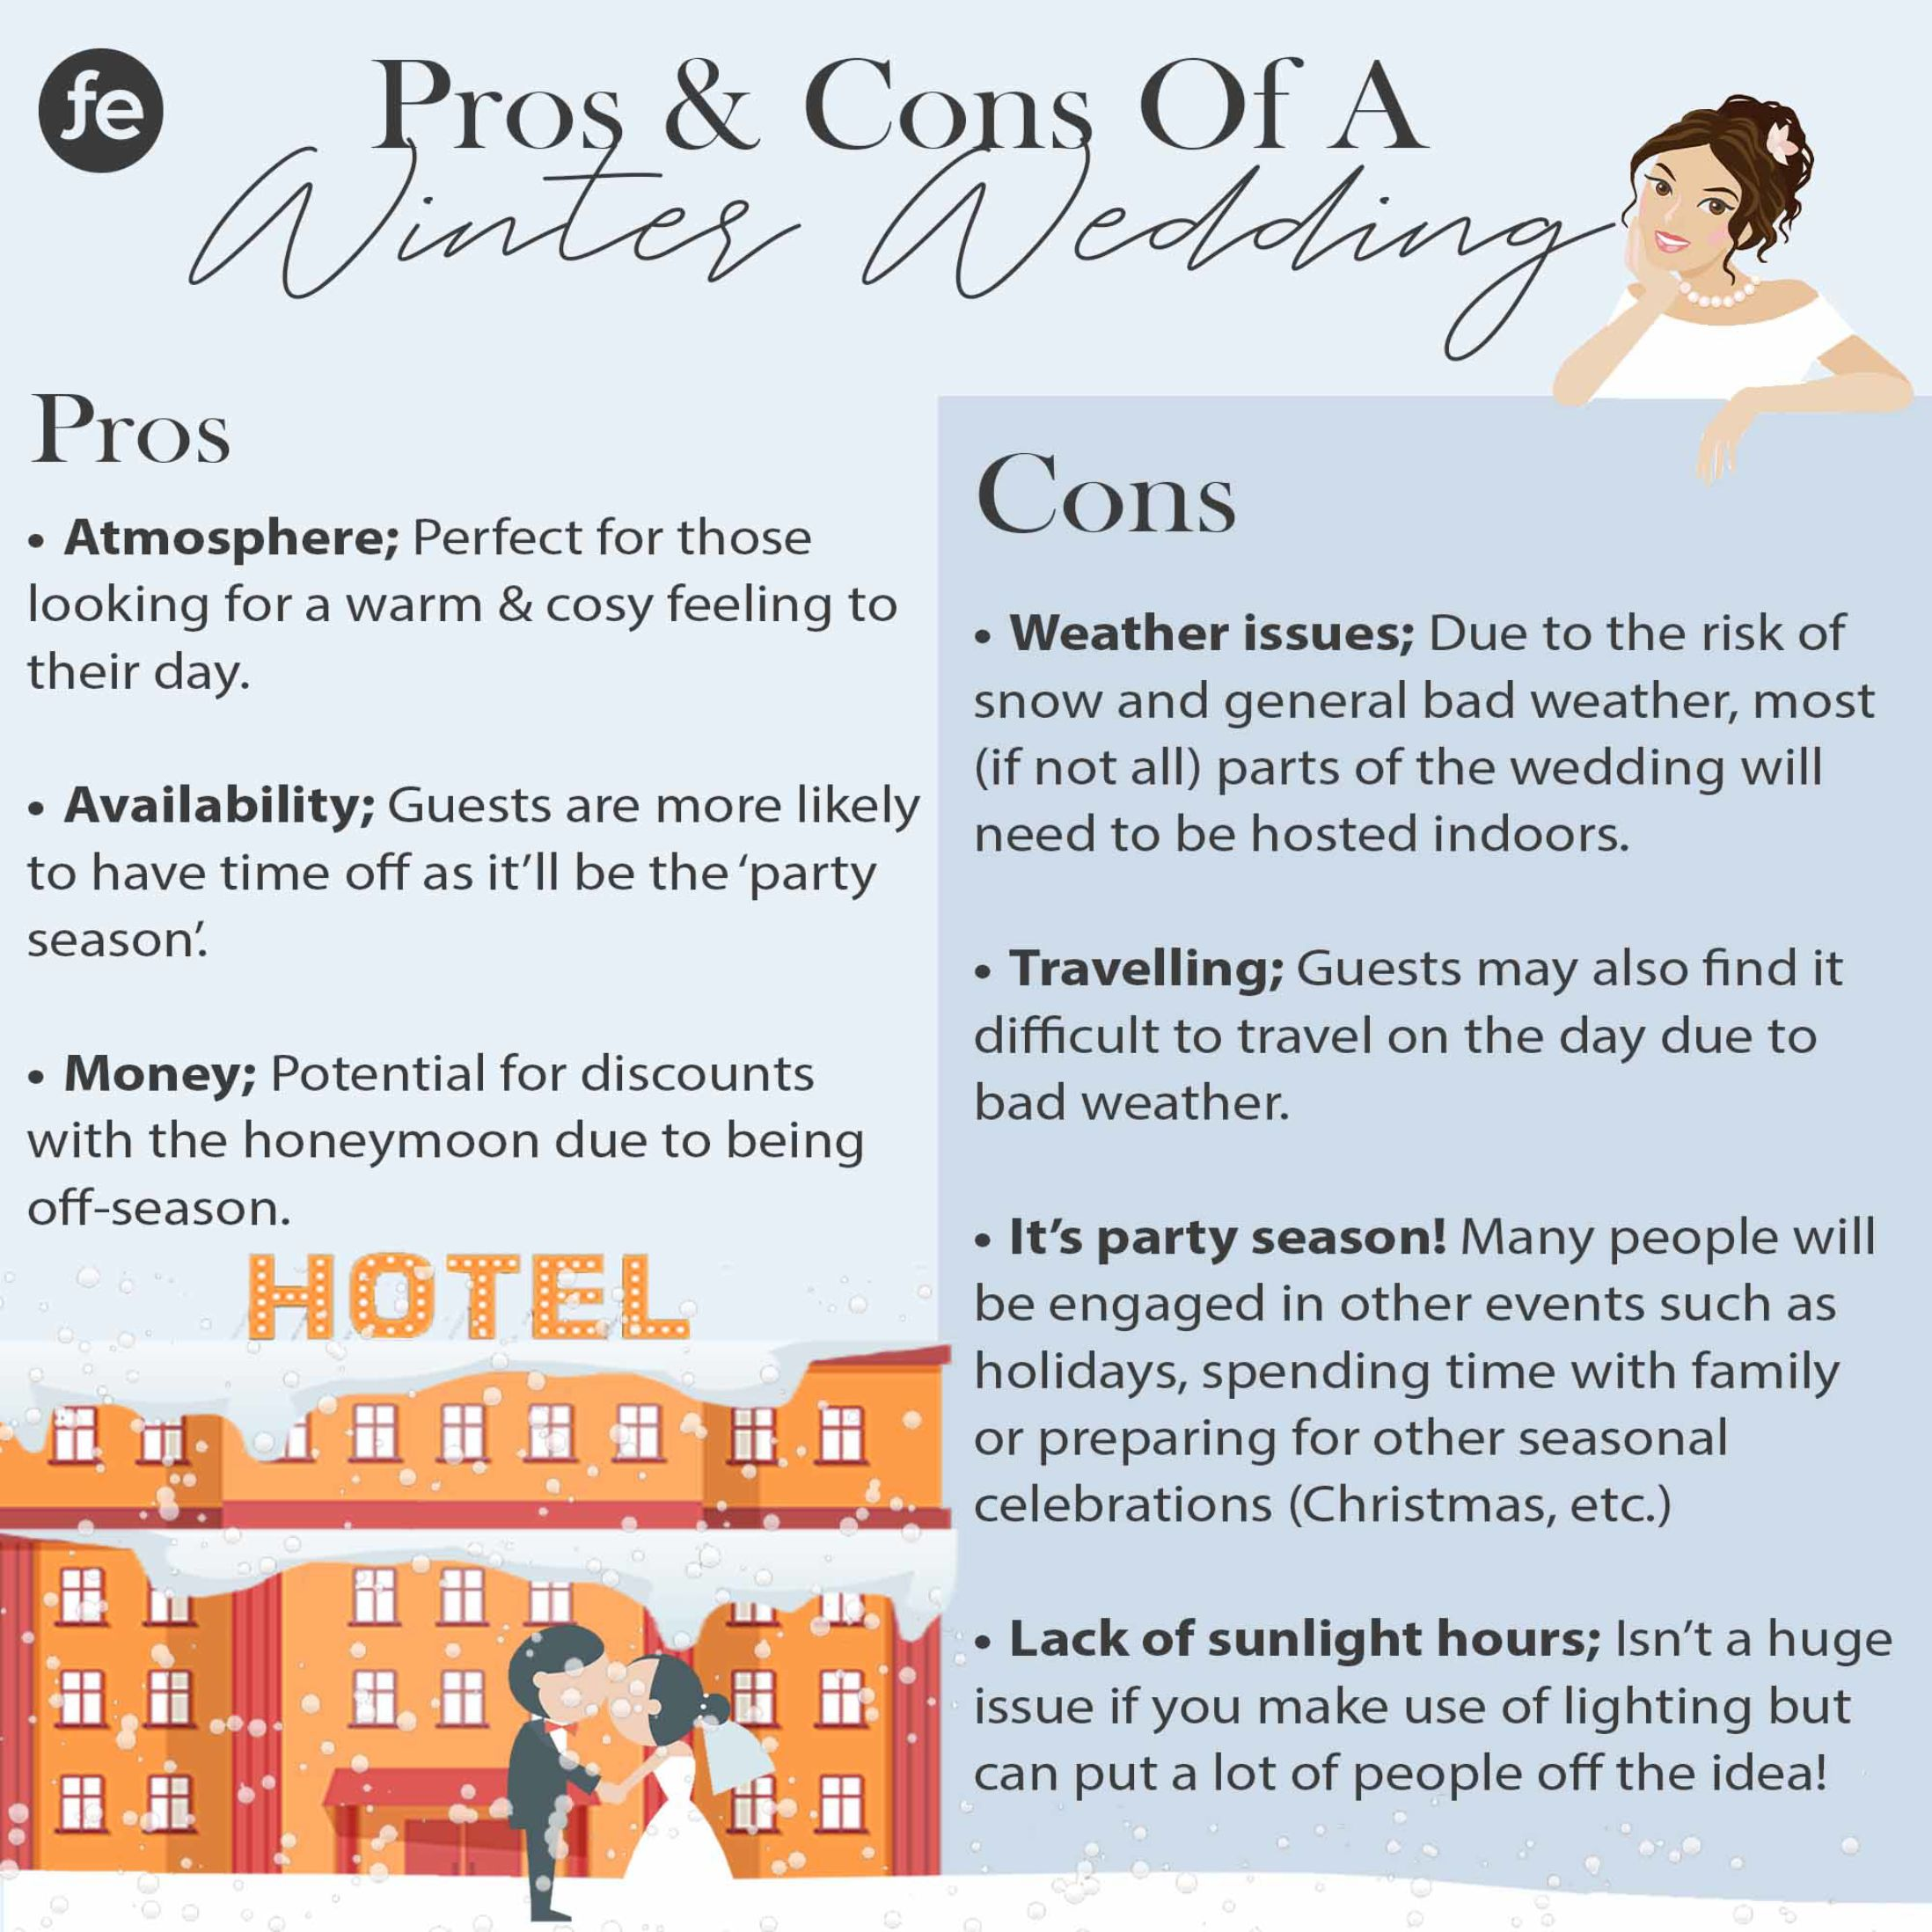 Winter Wedding Guide - Pros and Cons of A Winter Wedding